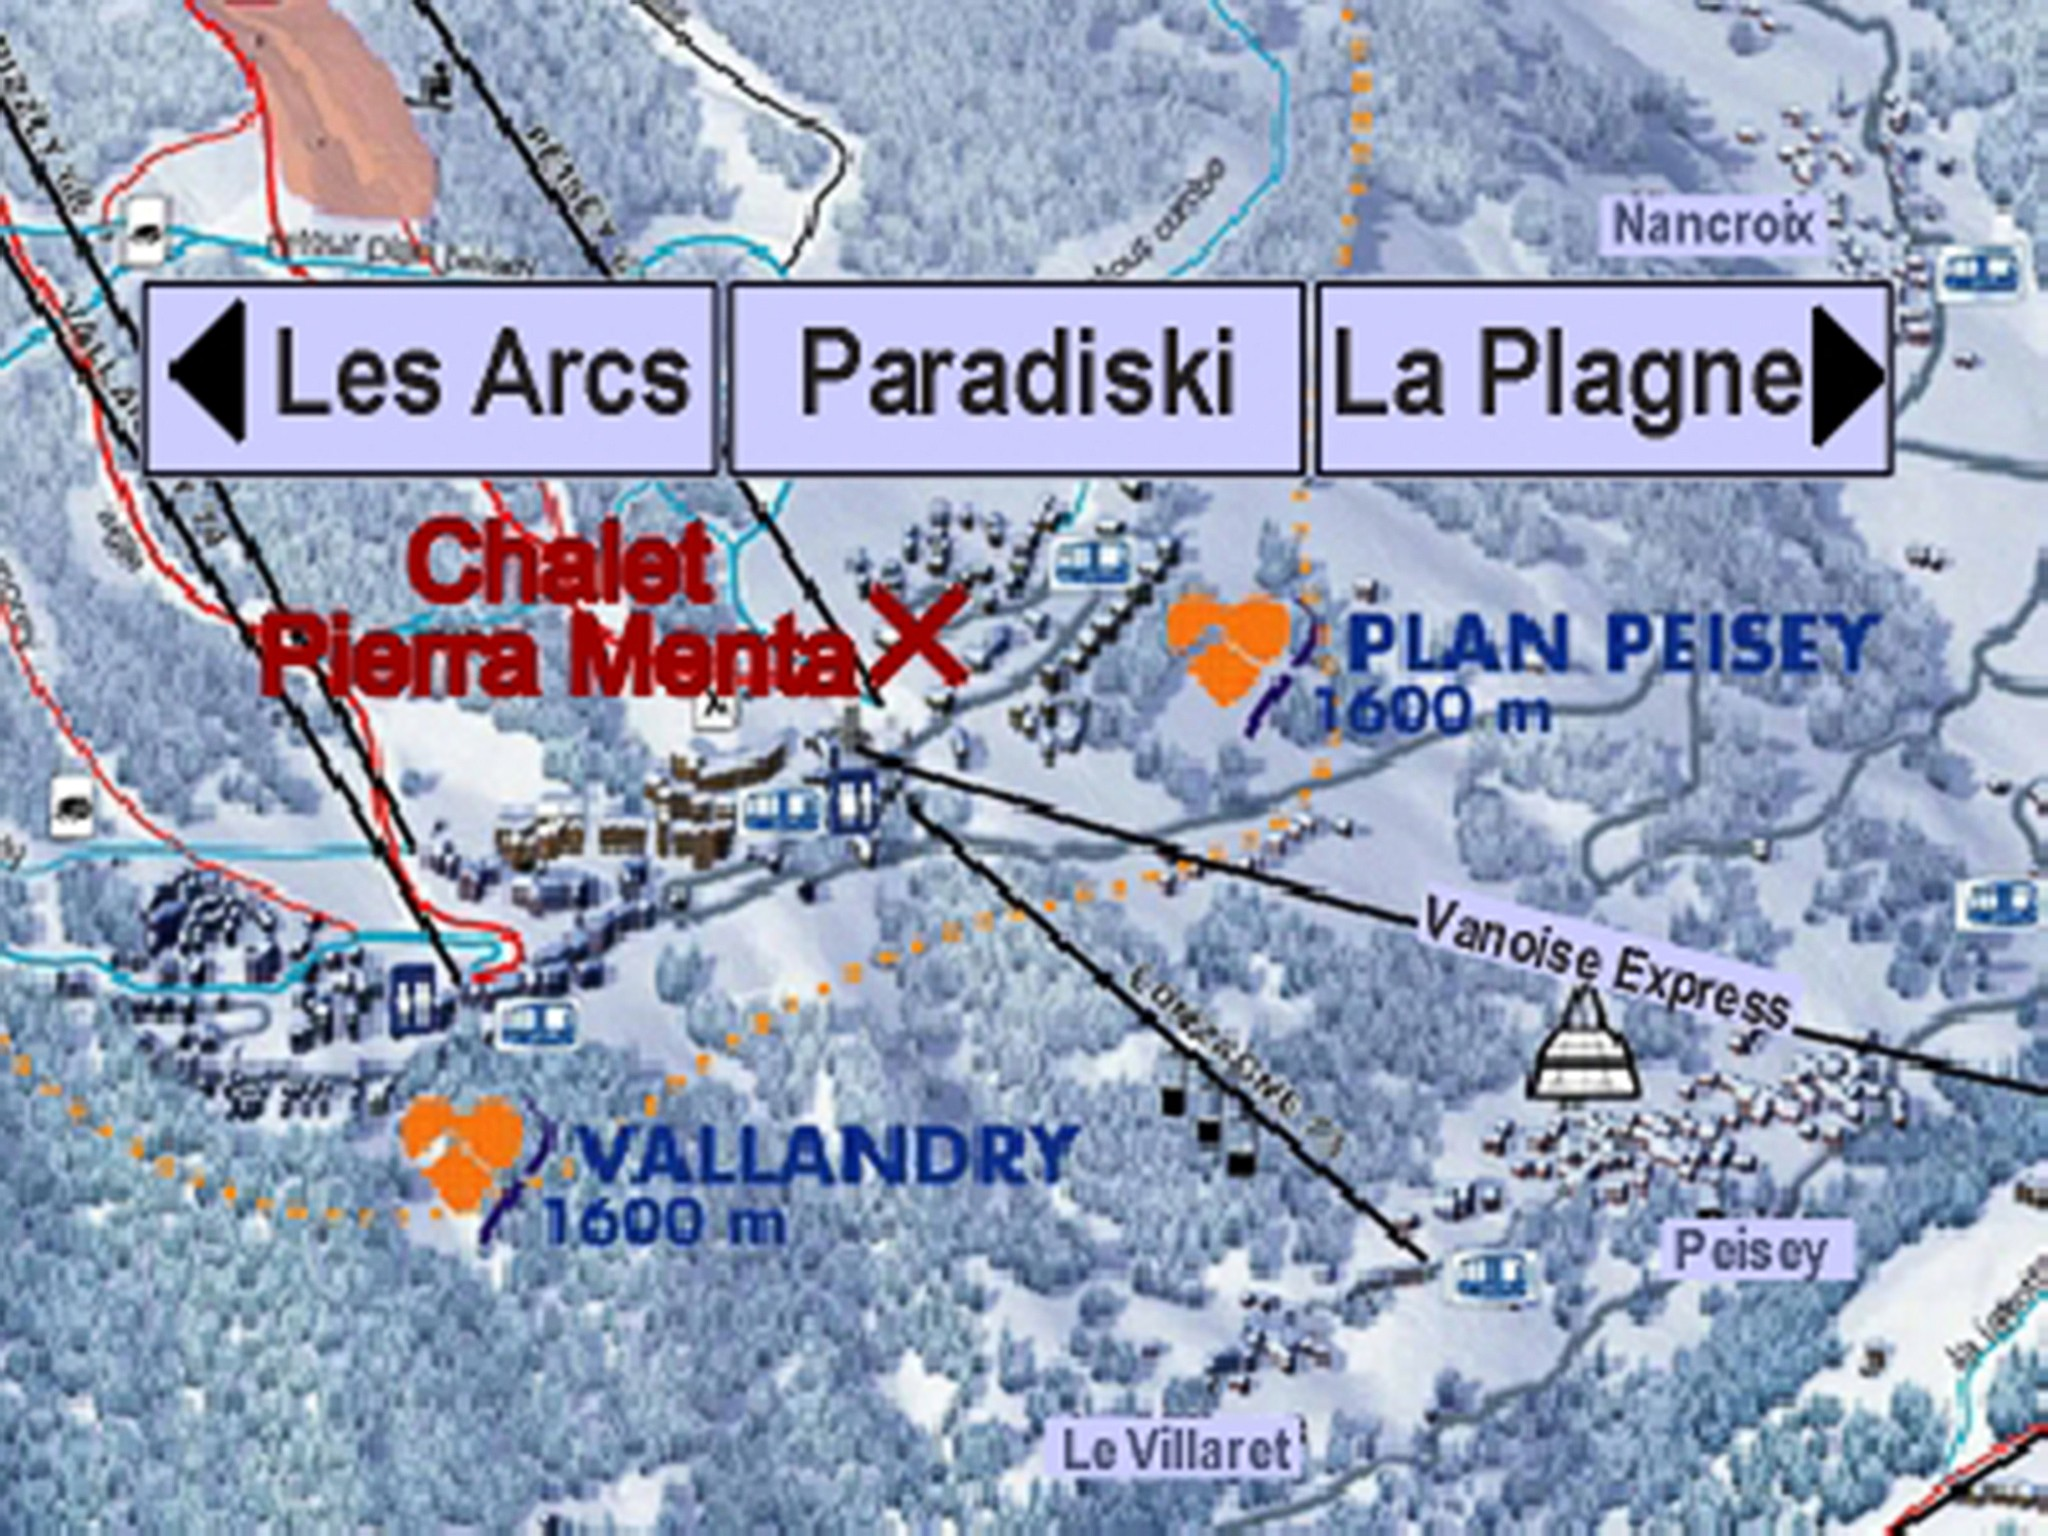 Chalet Pierra Menta - location map